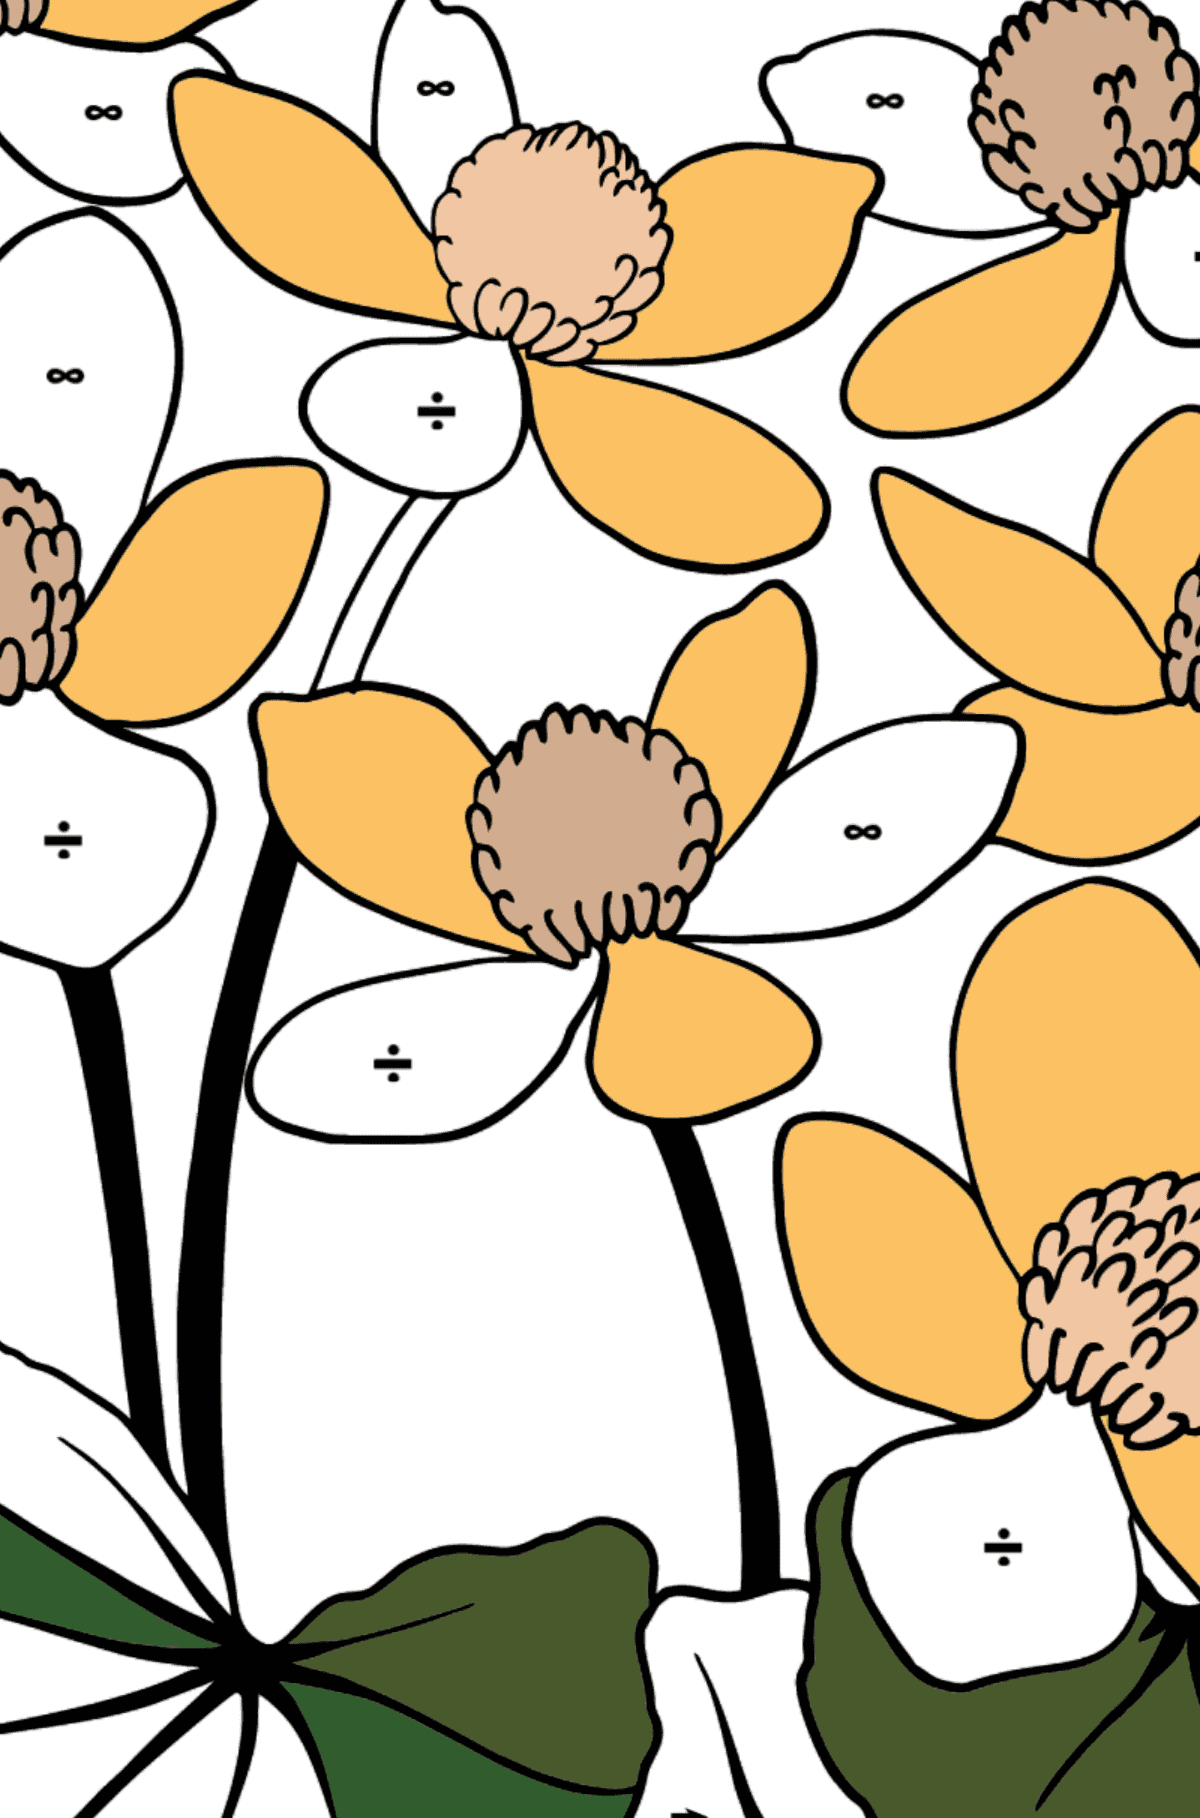 Flower Coloring Page - Marsh Marigold - Coloring by Symbols for Kids